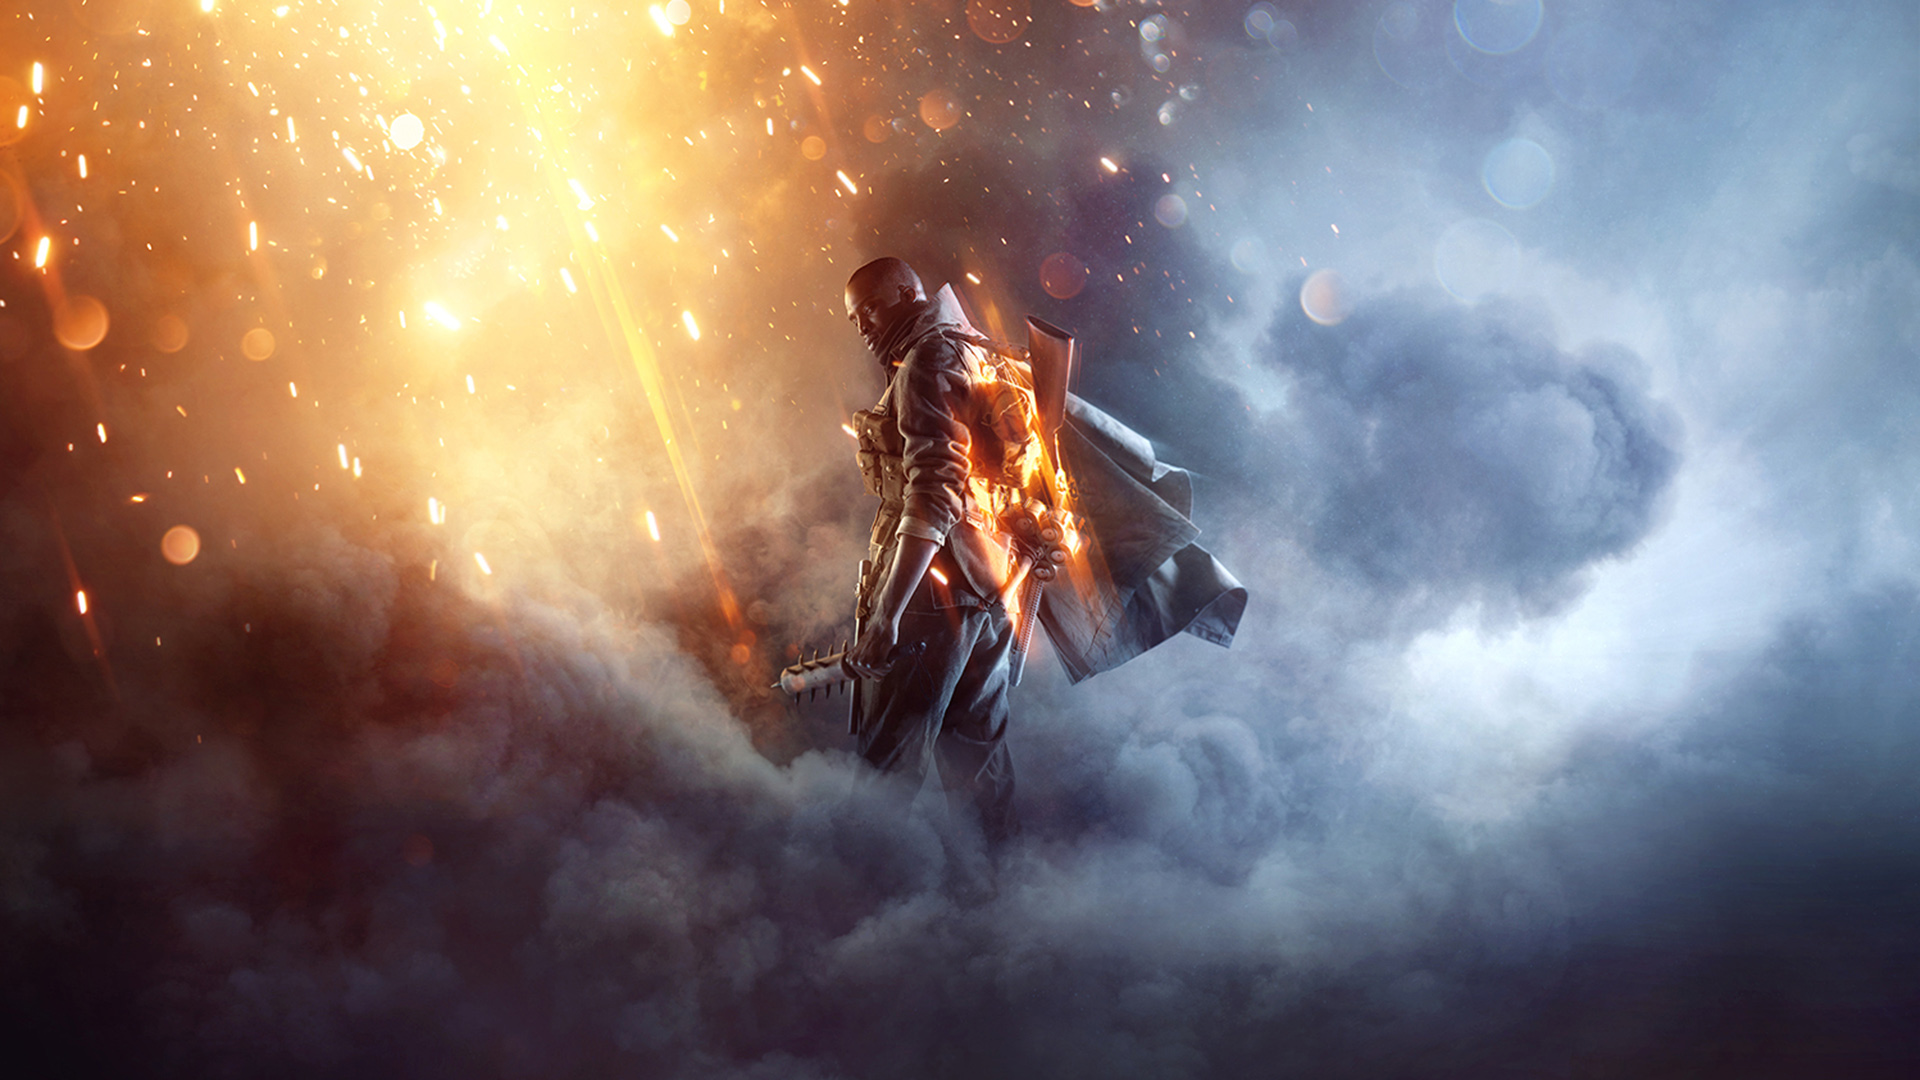 Battlefield 1 Expansion Includes Female Soldier Class For